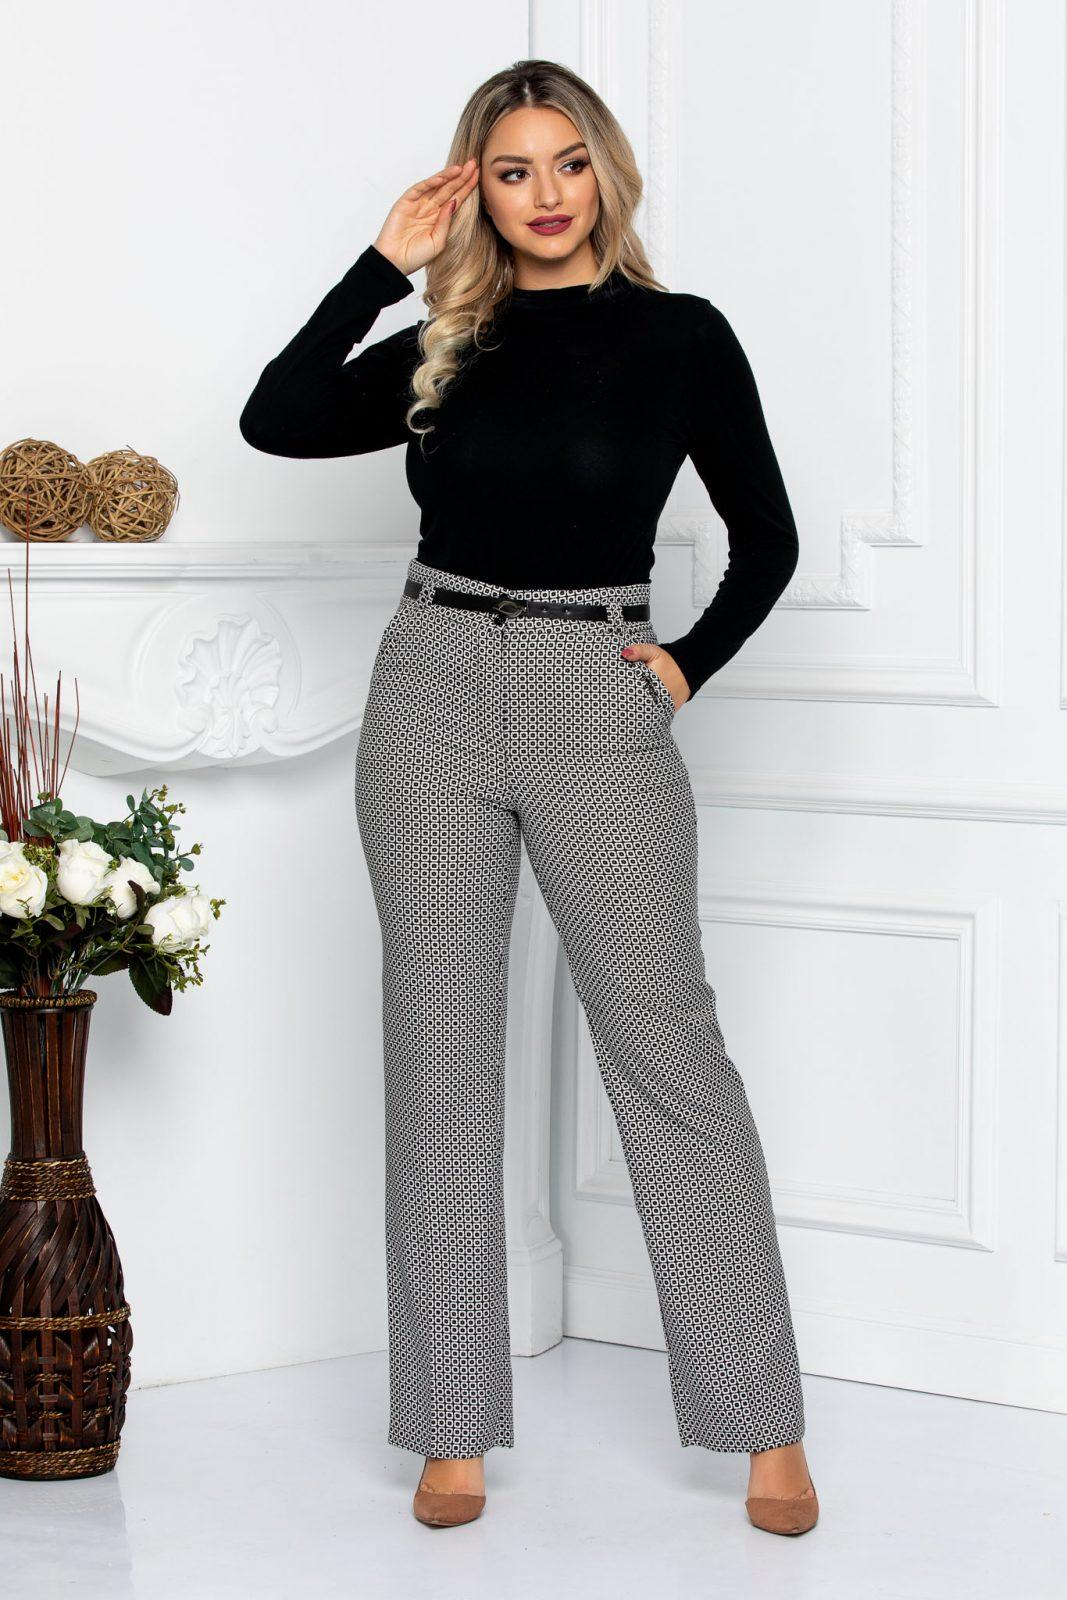 Ryan Bicolore Trousers